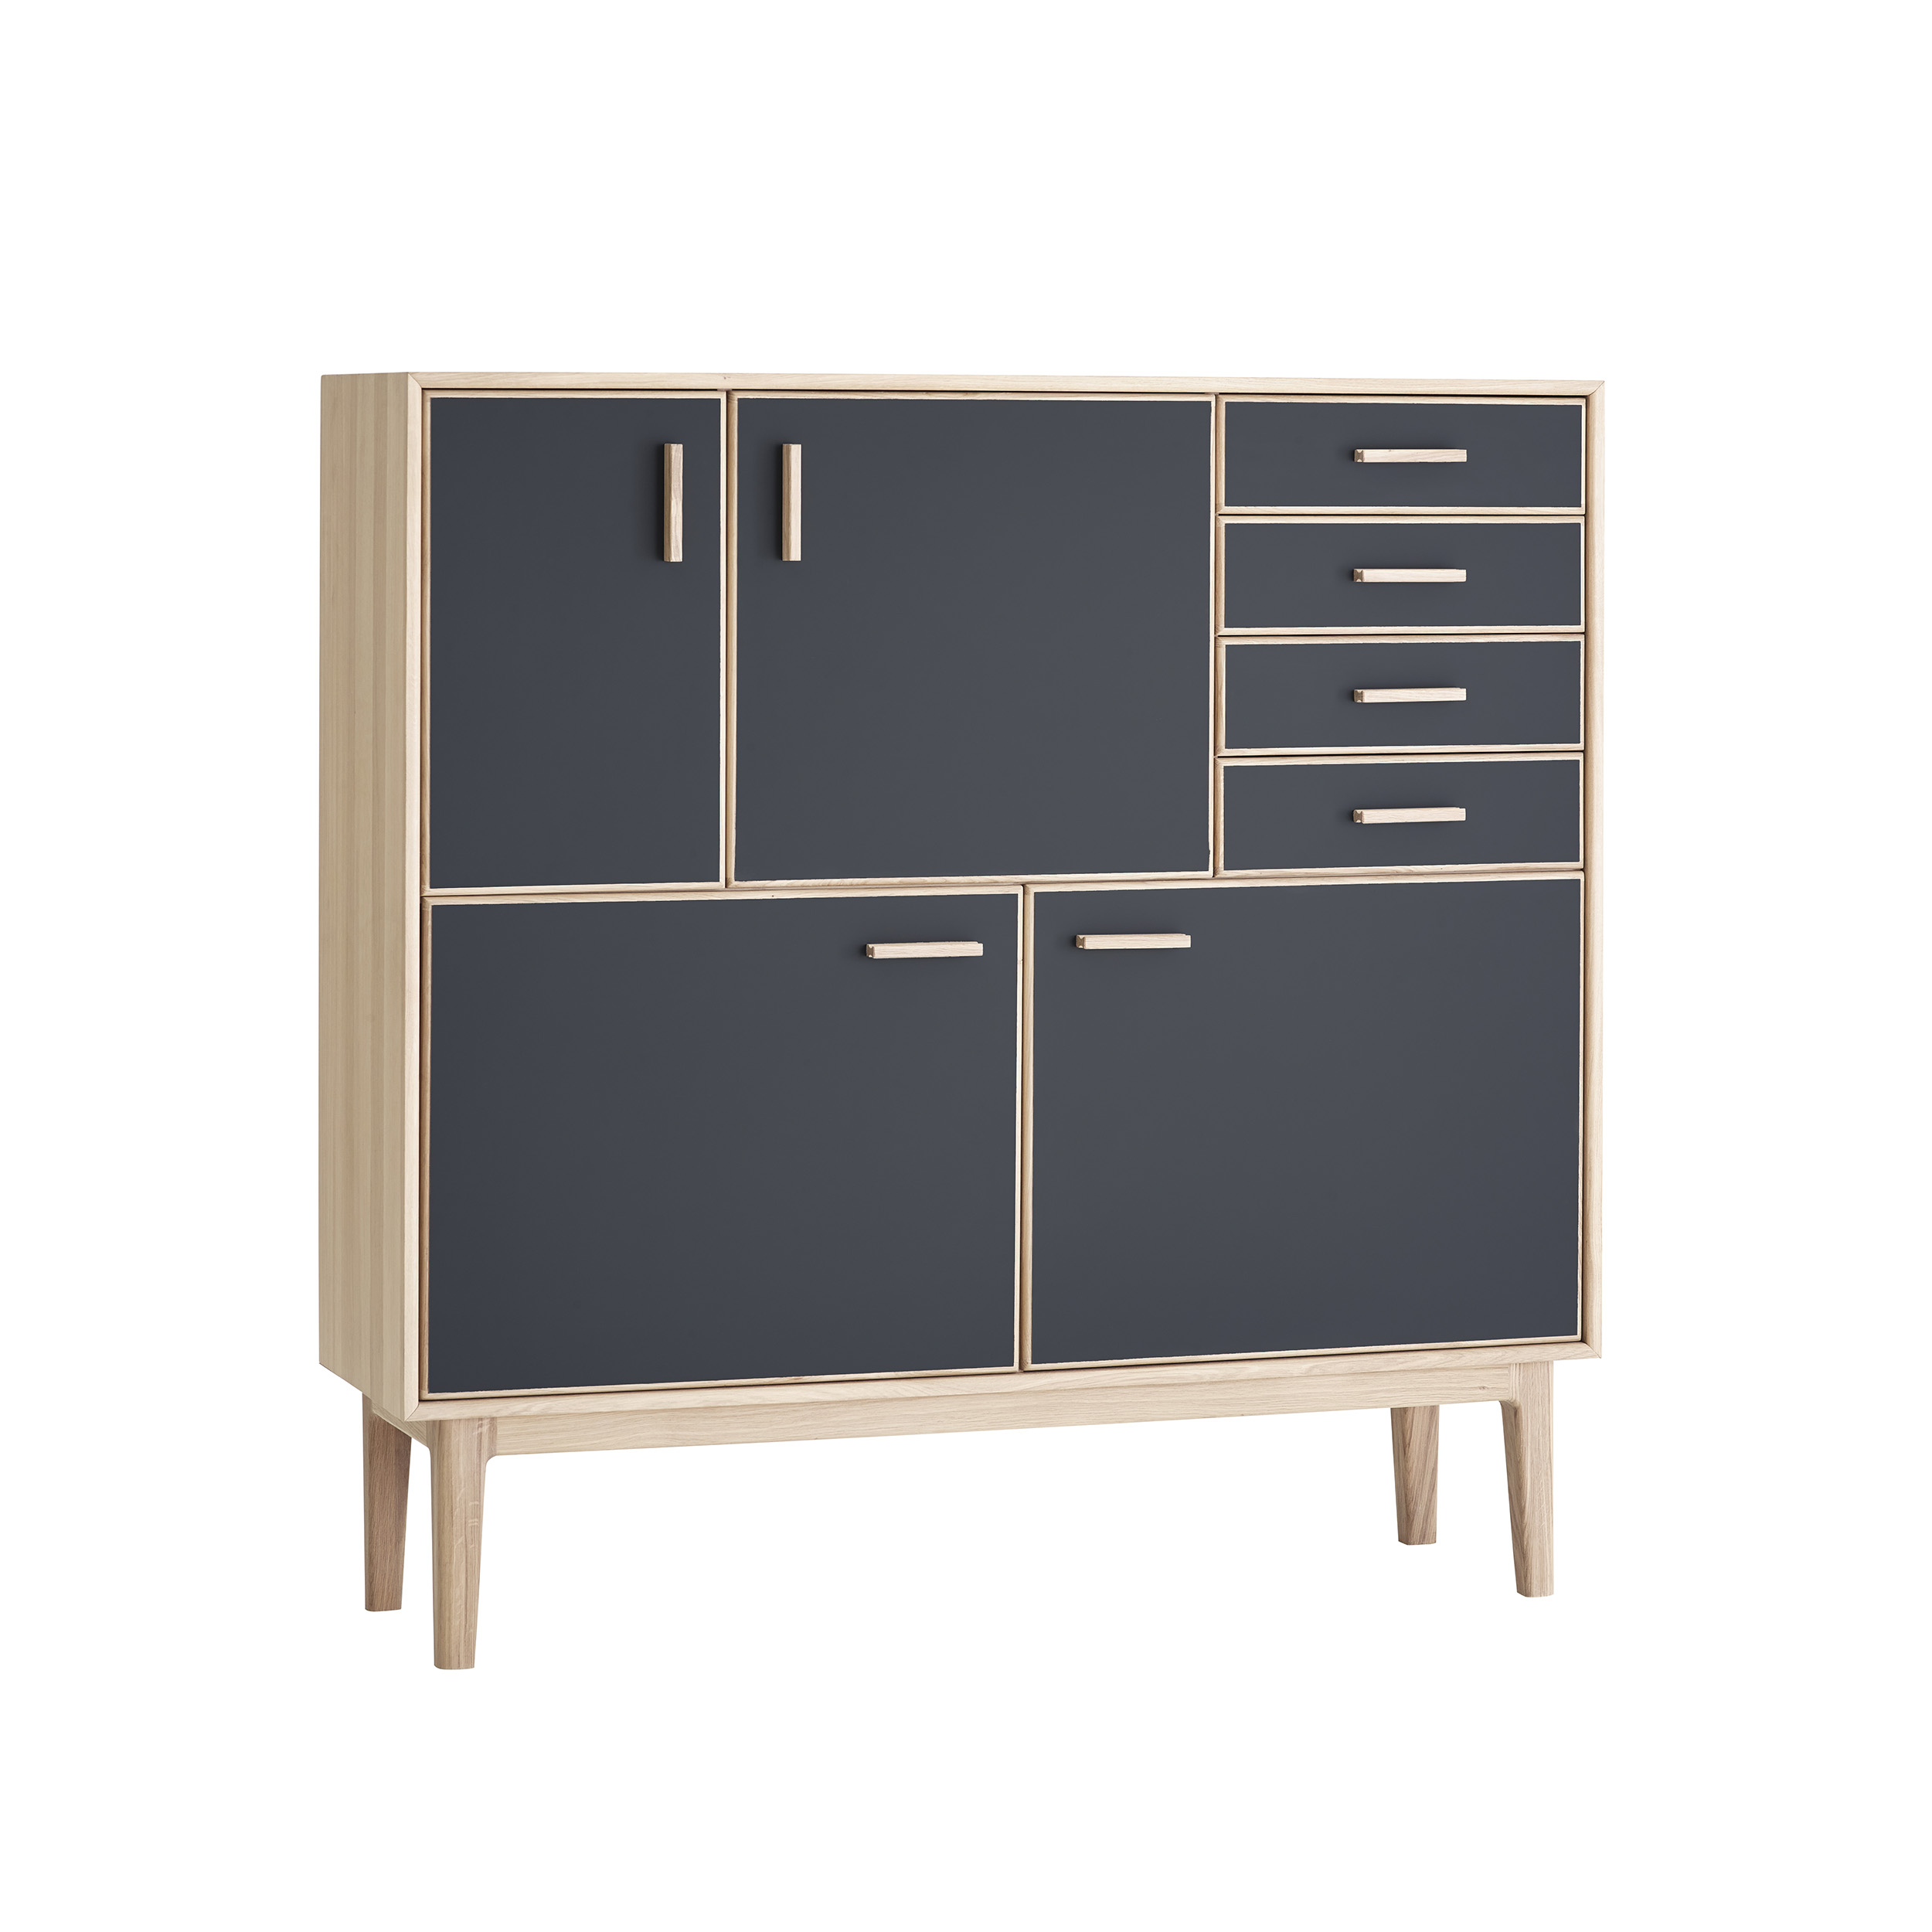 You are currently viewing CASØ 700 highboard